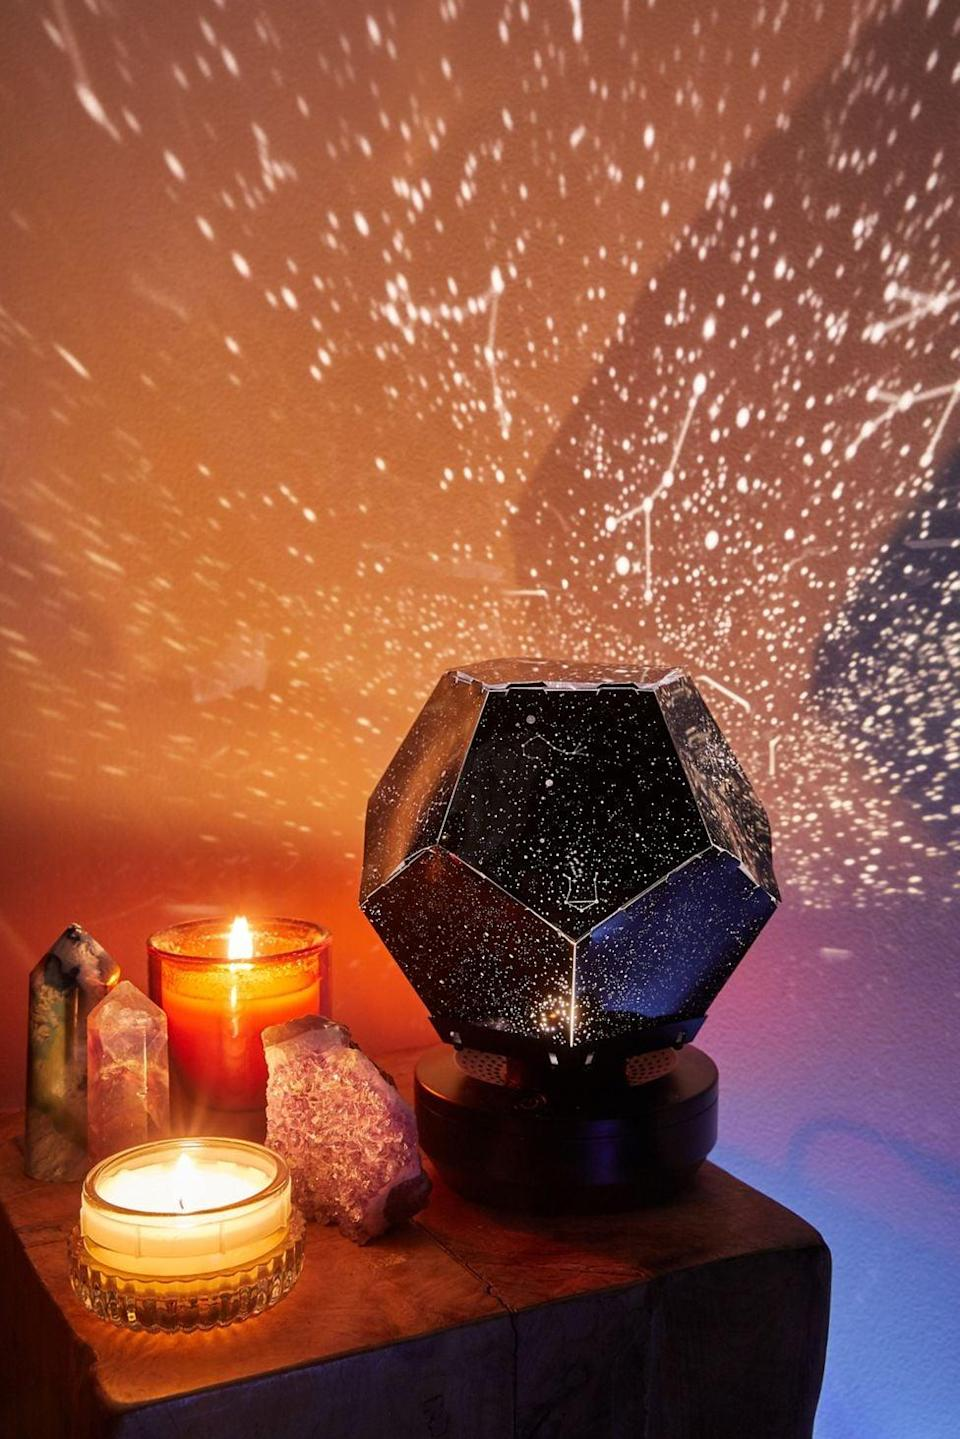 <p>Get this <span>Brilliant Ideas UO Exclusive Galaxy Star Projector</span> ($40) for the person who loves space. It makes for a seriously cool nightlight.</p>